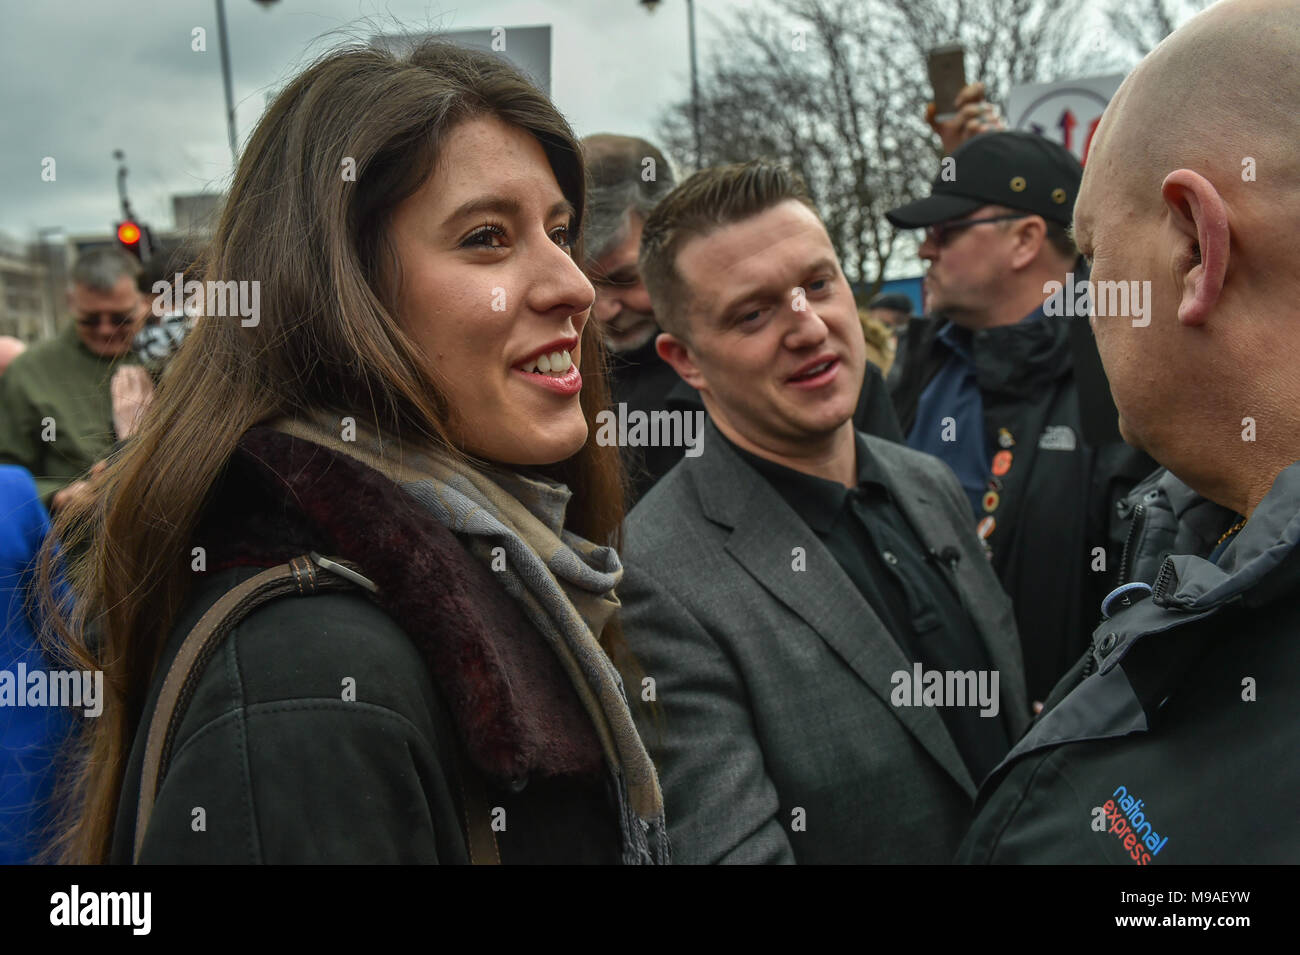 Birmingham, United Kingdom. 24 March 2018. People have gathered for the 'Football Lads Alliance' (FLA) demonstration in Birmingham. There were speeches from John Mieghan, Anne Marie Waters, Luke Nash-Jones and Aline Moraes. After a short march the group dispersed in Edgbaston St. Pictured: Aline Moraes & Tommy Robinson  Credit: Peter Manning/Alamy Live News - Stock Image